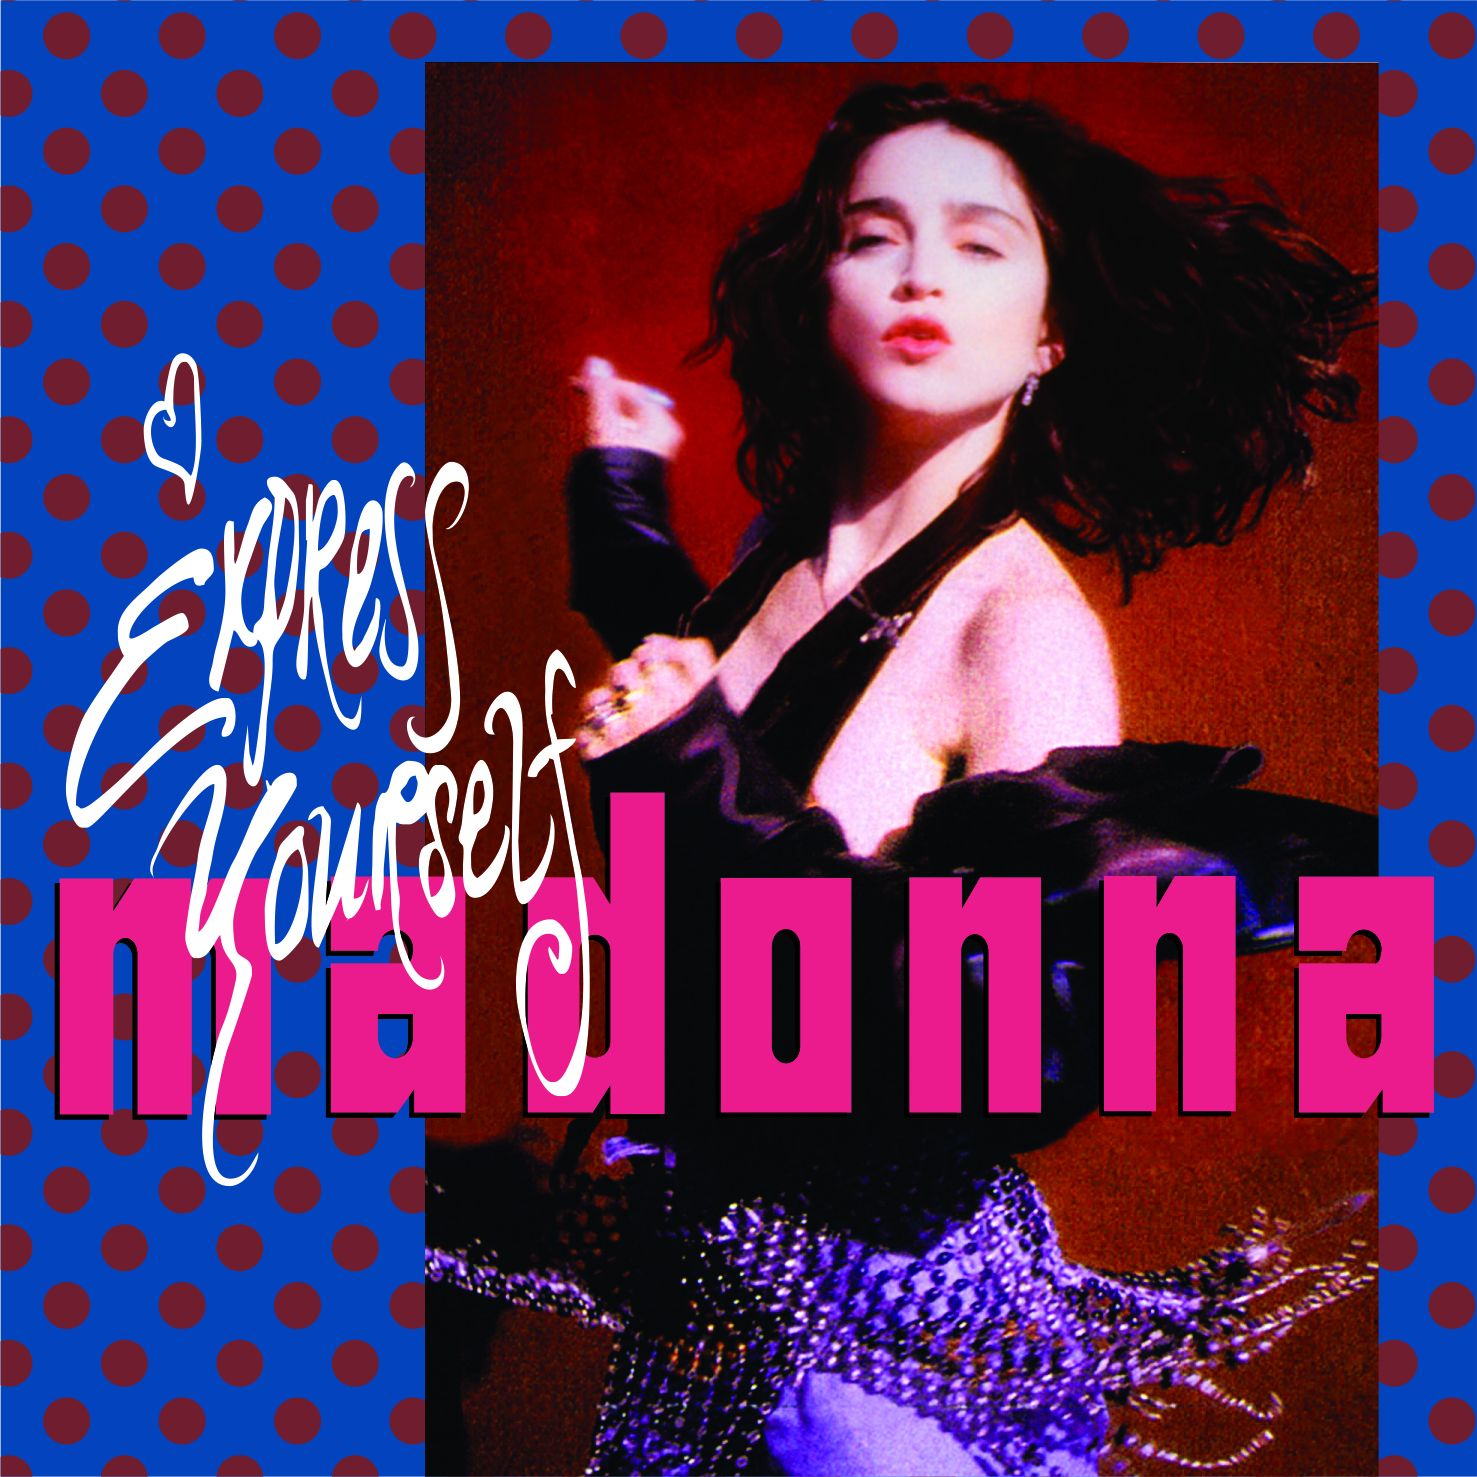 Express Yourself Madonna quot Express Yourself quot by Madonna